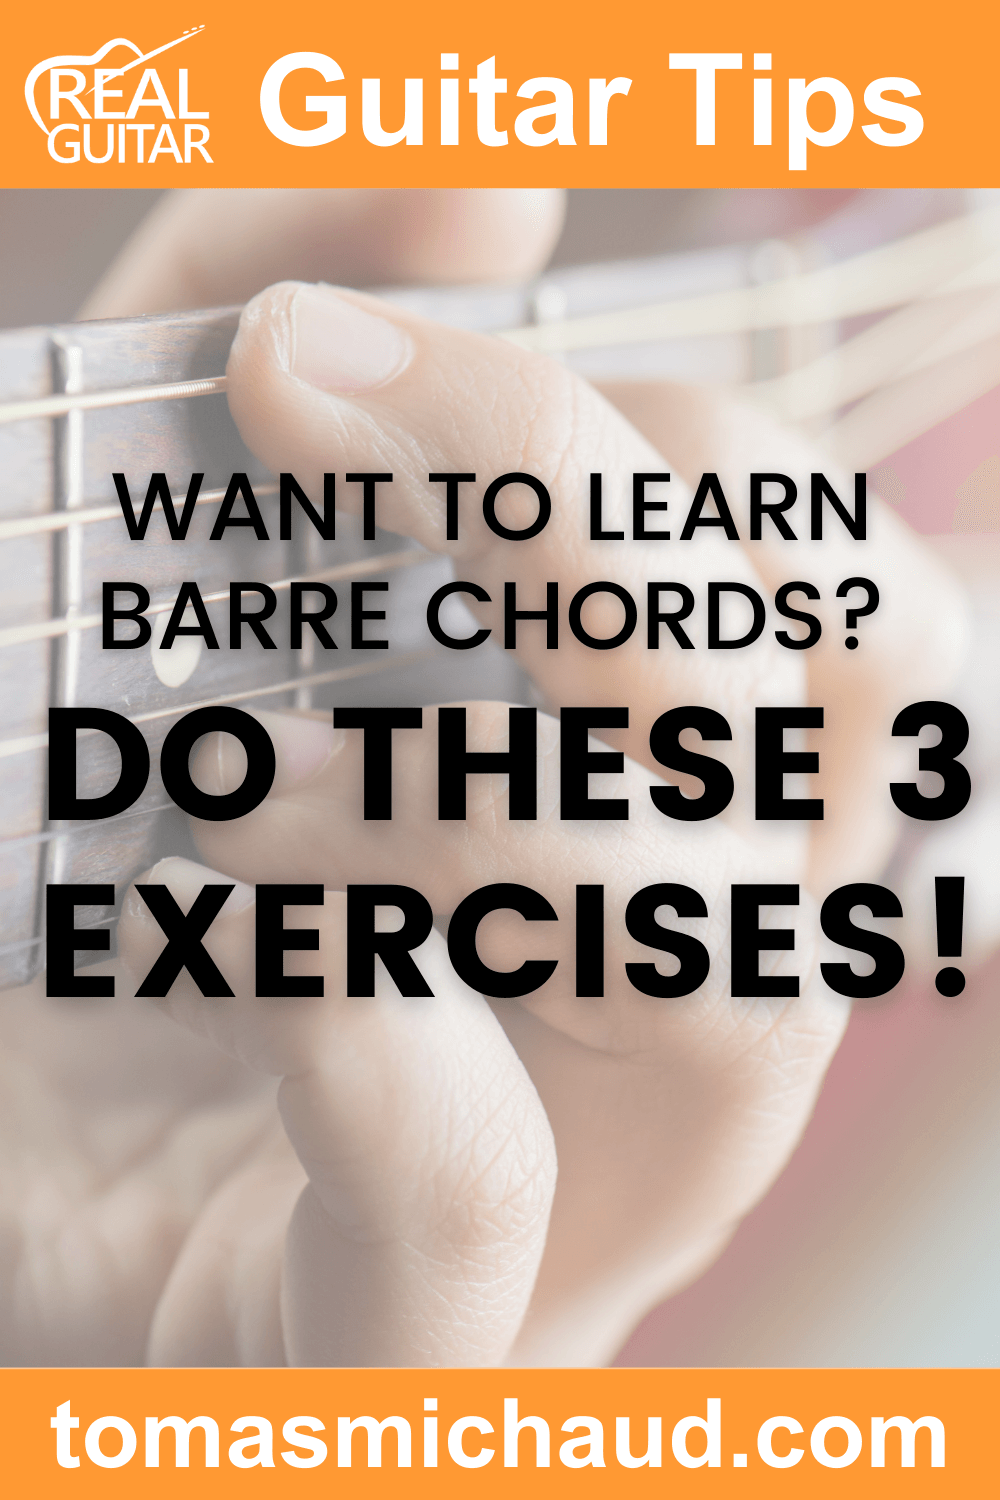 Want to learn barre chords? Do these 3 exercises!